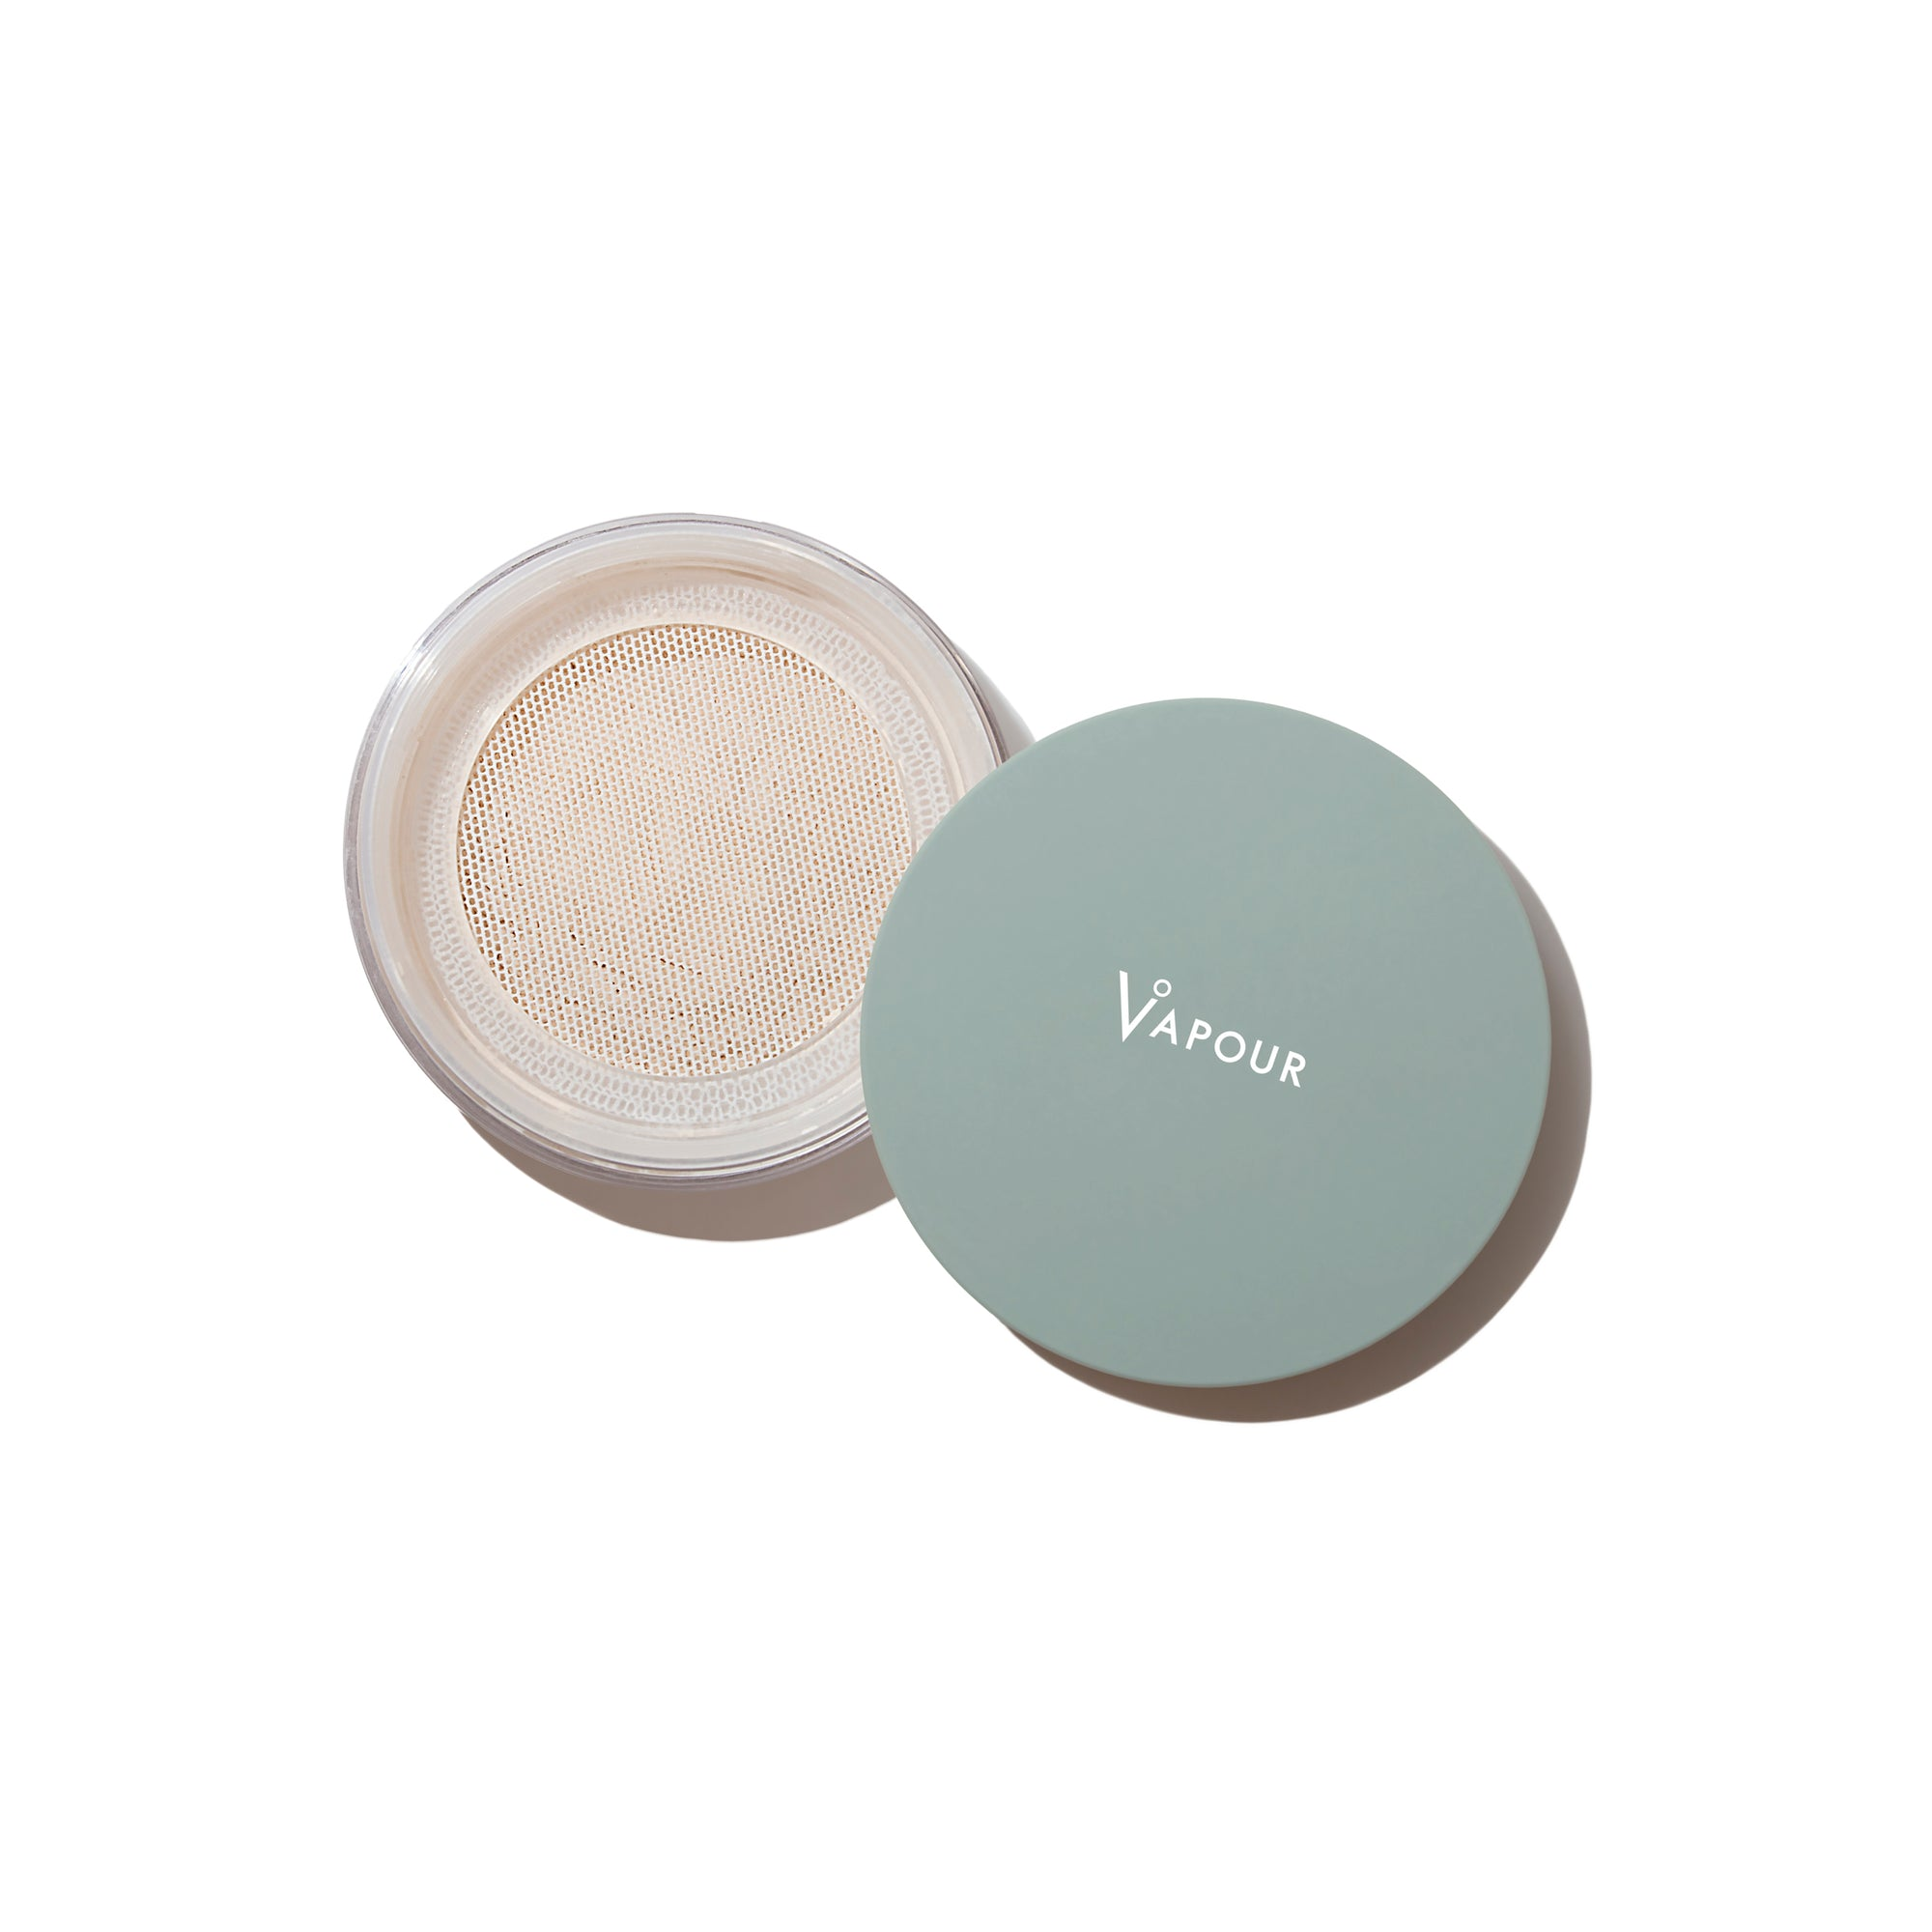 Vapour Perfecting Powder- Loose Travel - AILLEA